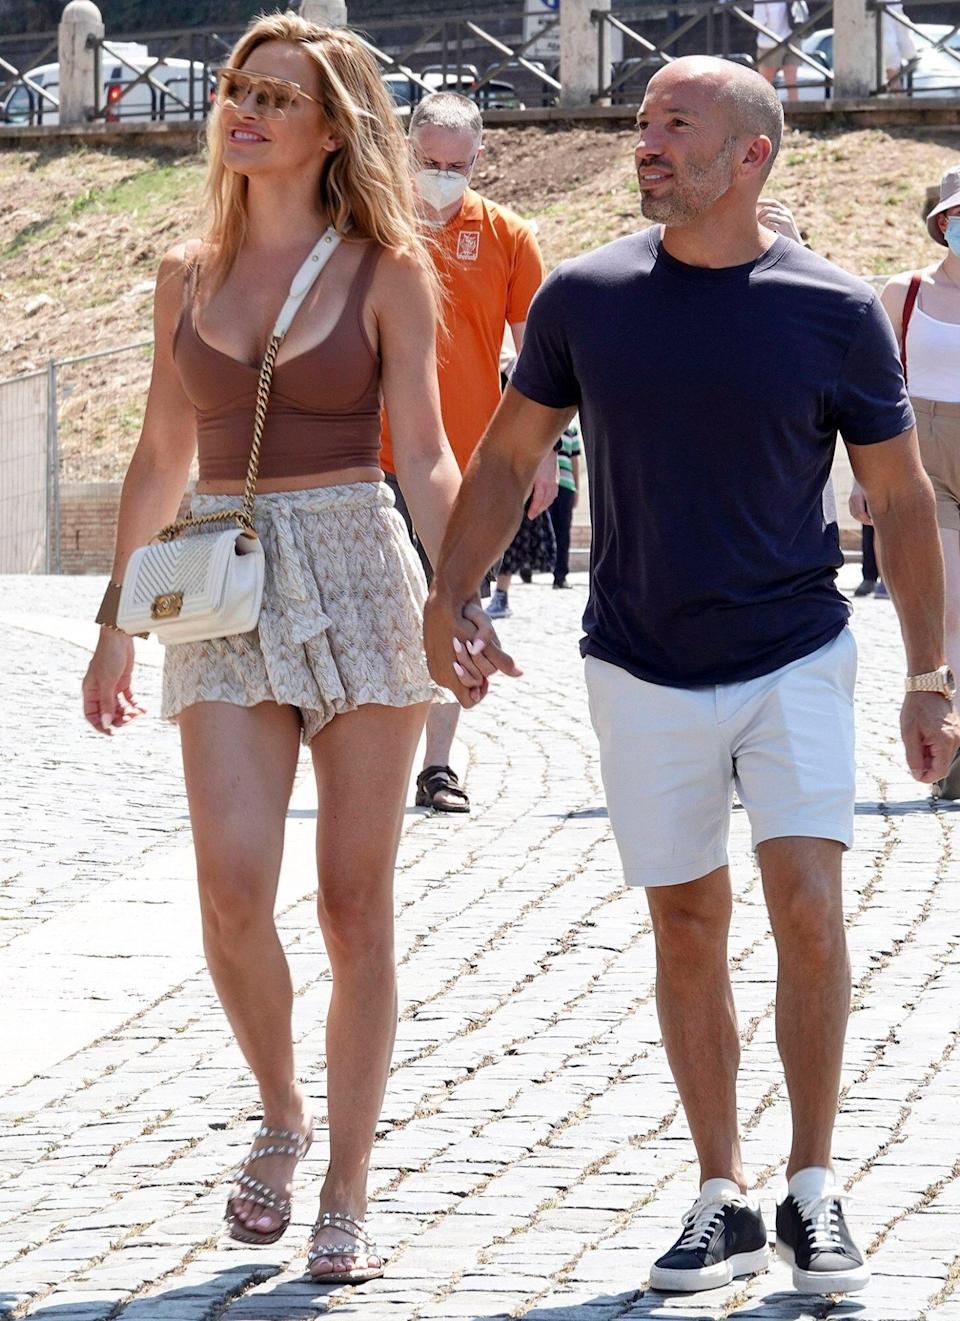 Chrishell Stause and Jason Oppenheim are spotted walking hand in hand while visiting the Colosseum and the Roman Forum before packing up and leaving Rome July 30, 2021